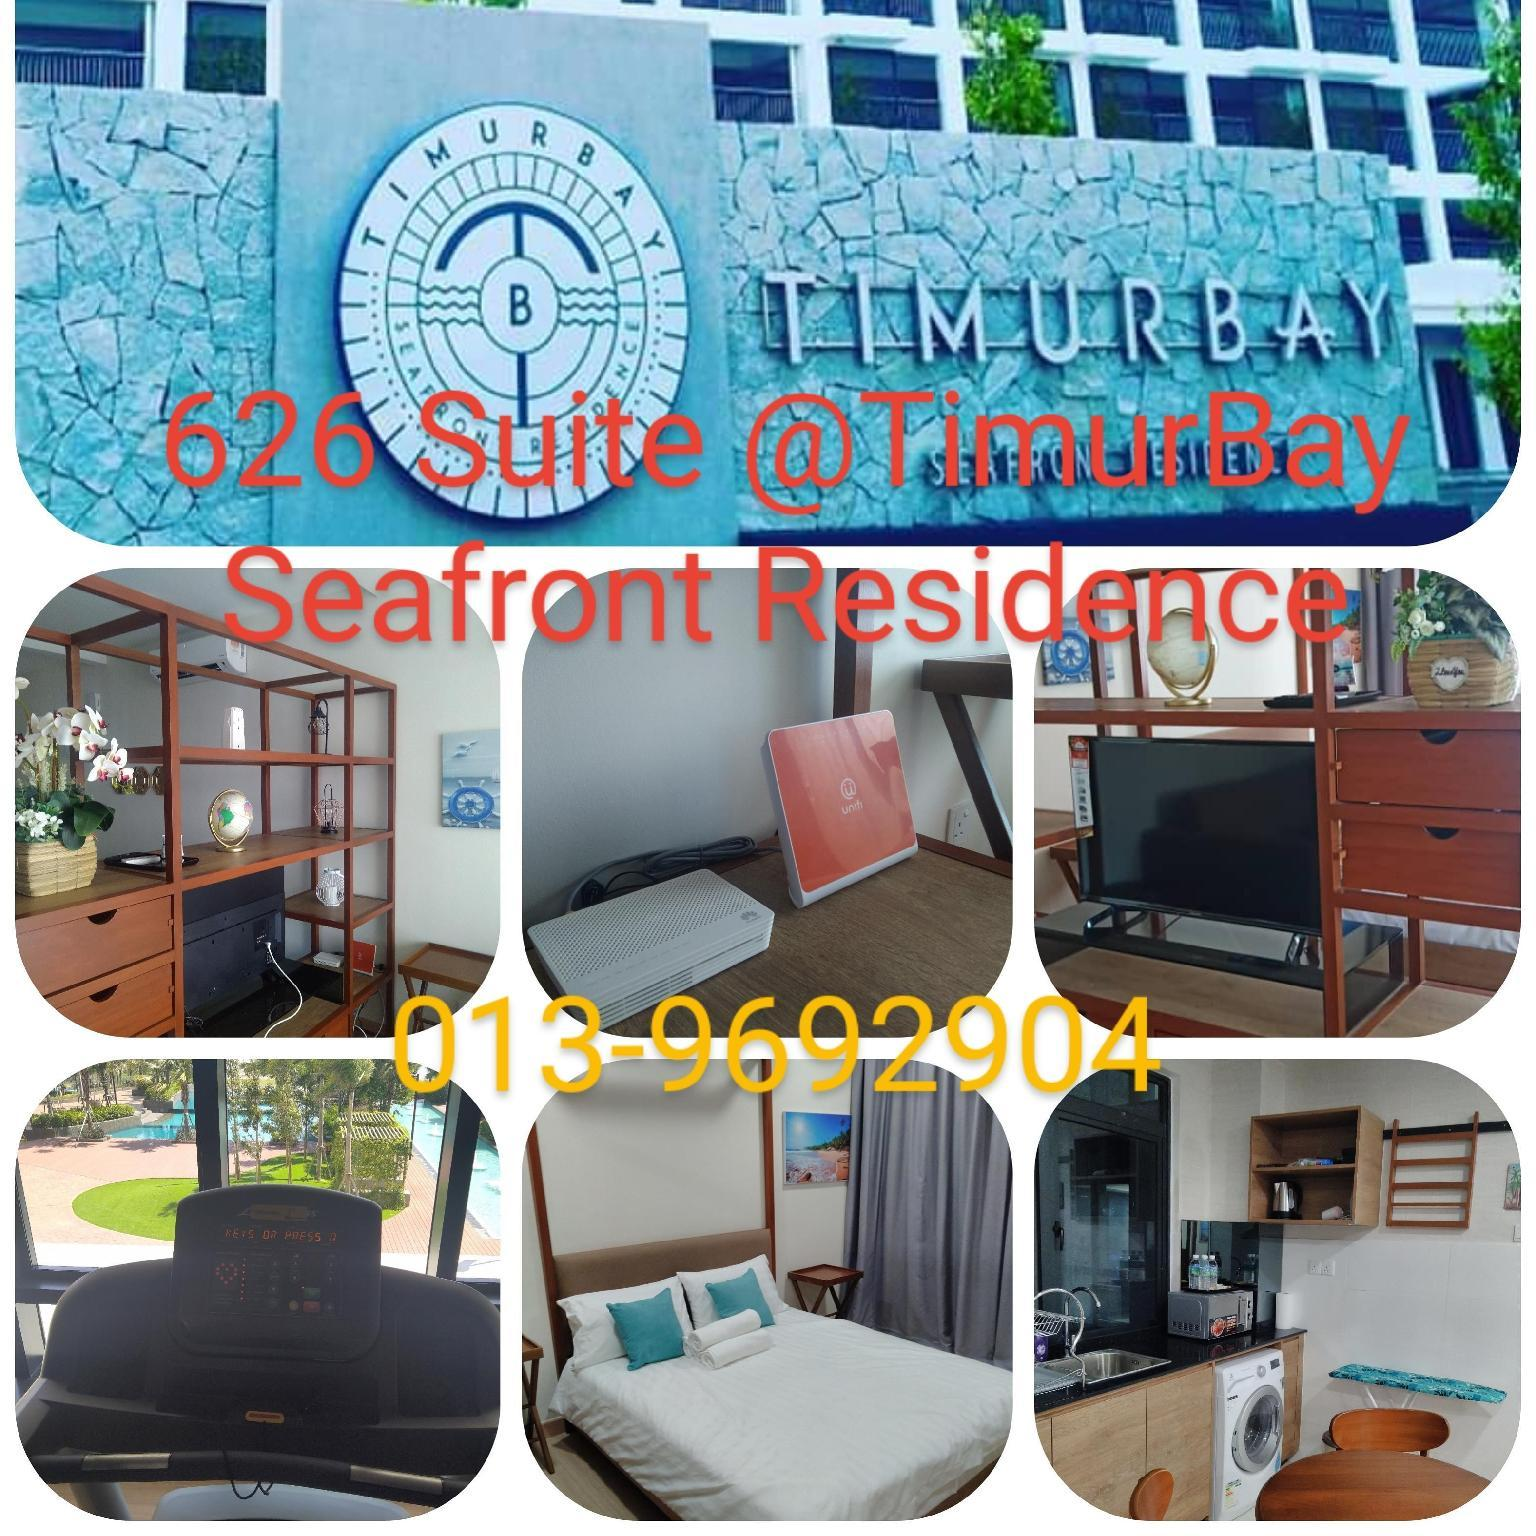 TimurBay Seafront Residence 626 Suite Apartment